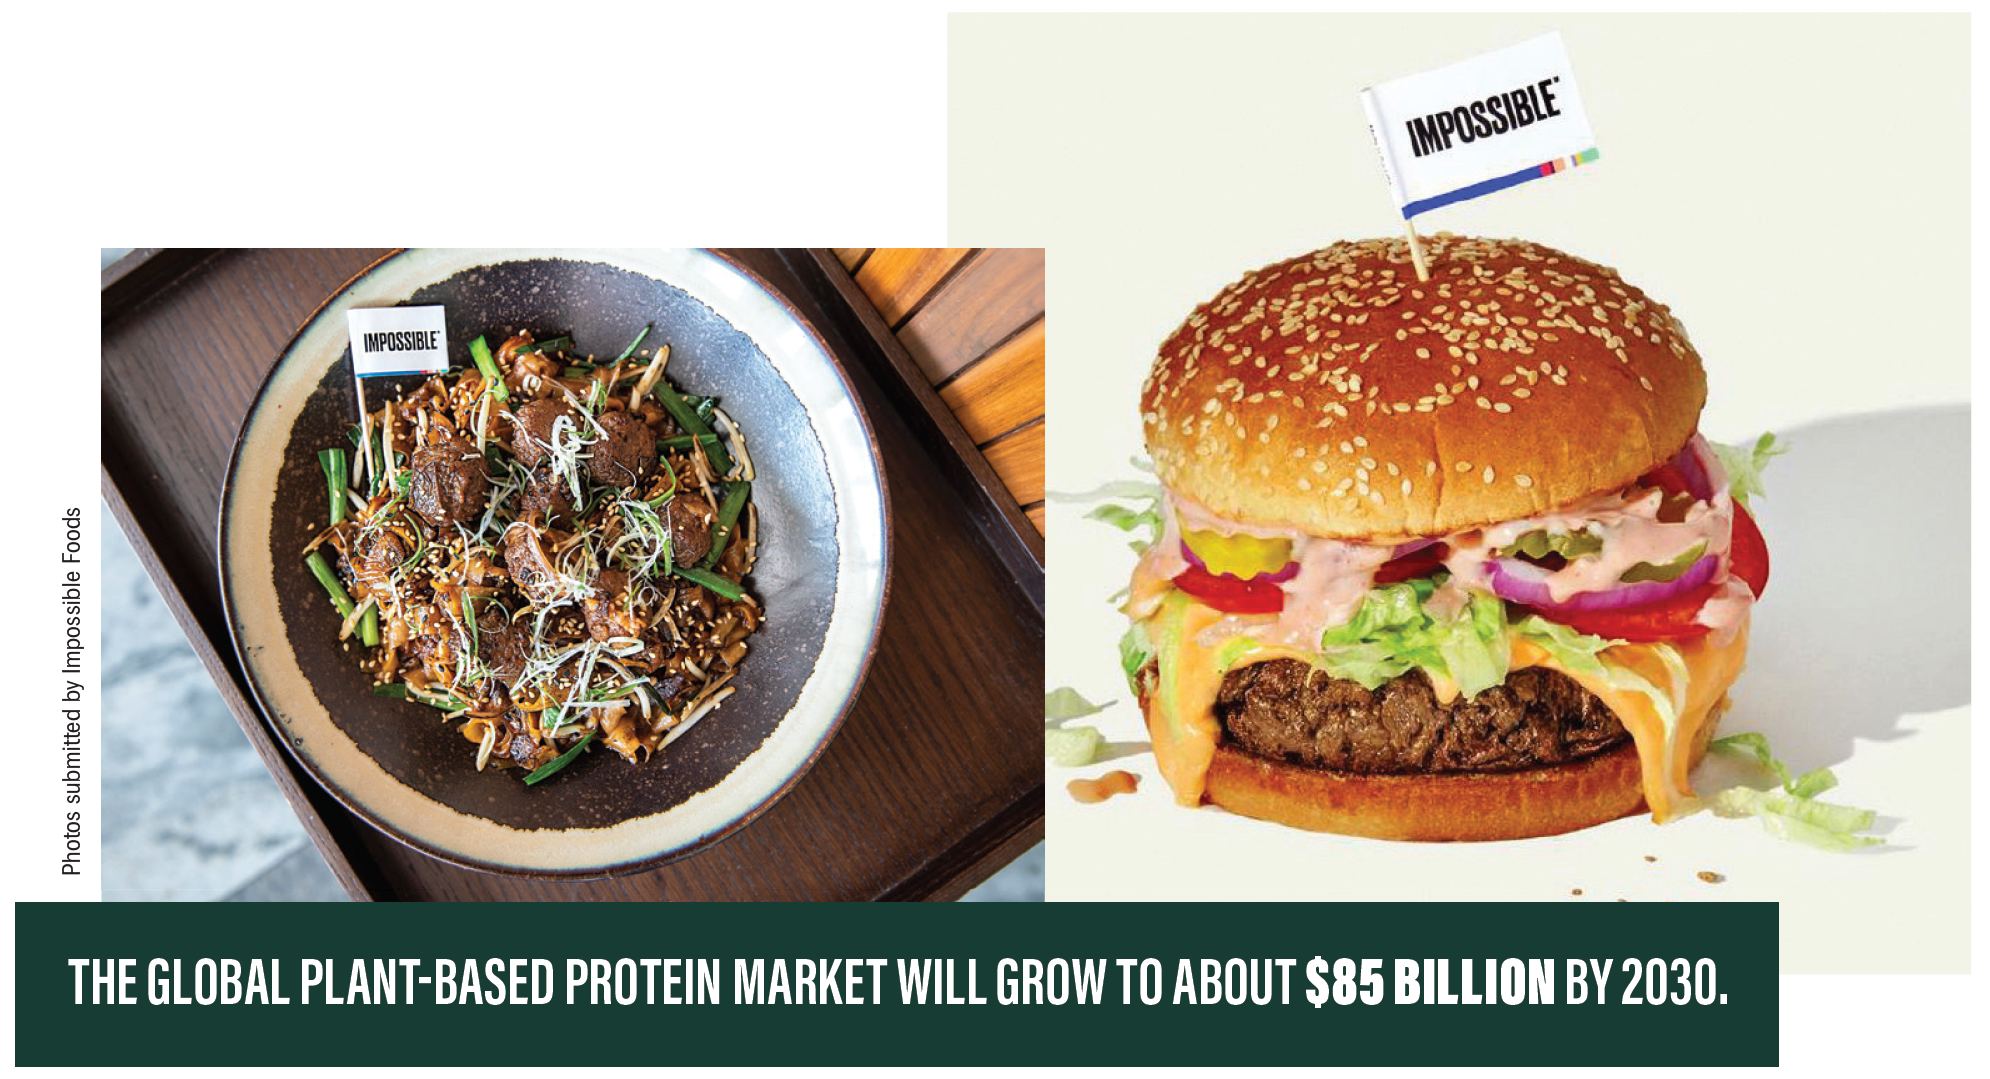 The global plant-based protein market was worth more than $4.6 billion in 2018 and will grow to about $85 billion by 2030, according to Swiss investment firm UBS.